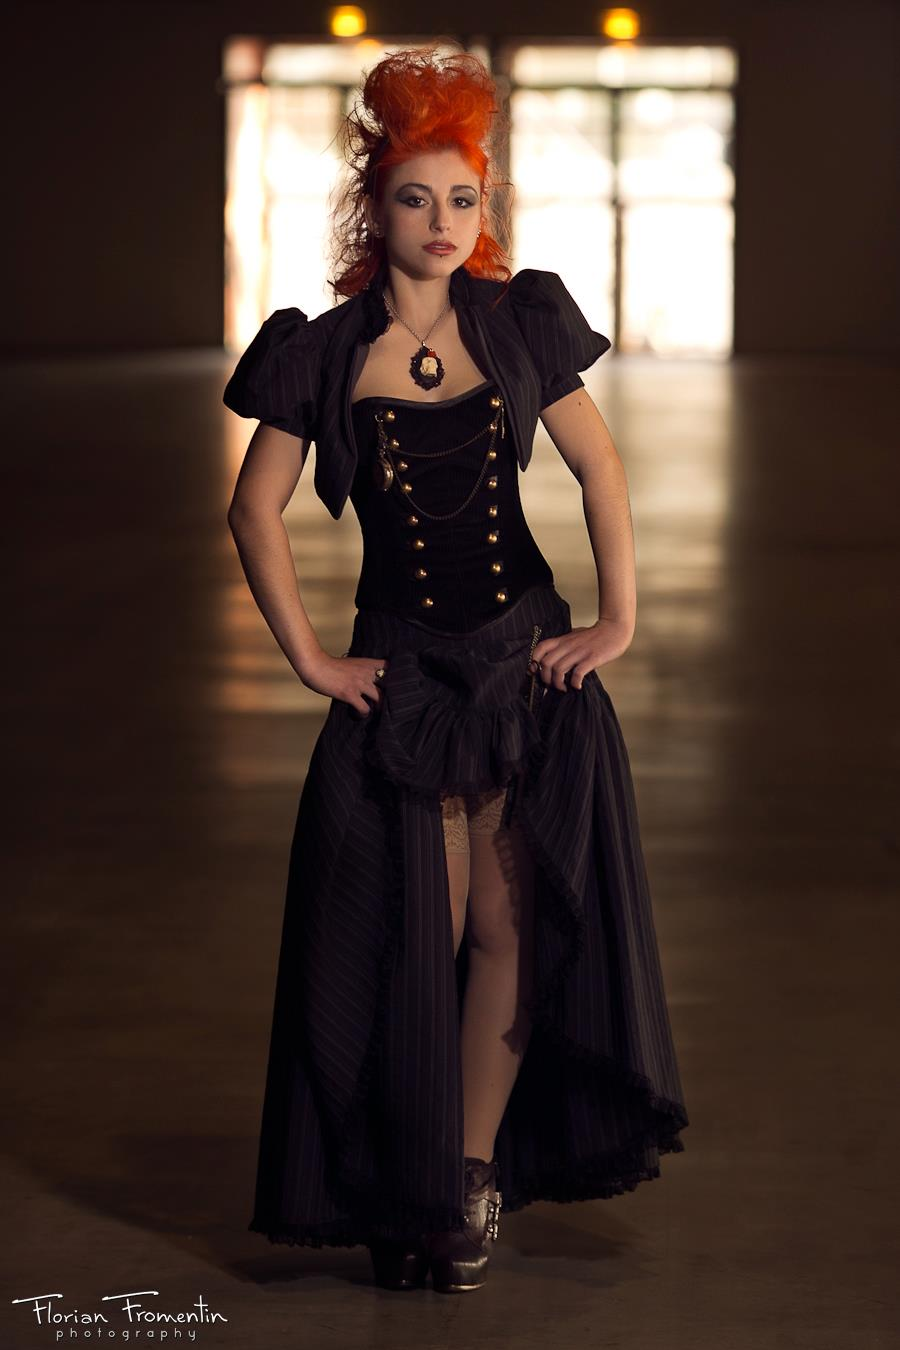 Steampunk Fashion Women Dresses Google Images